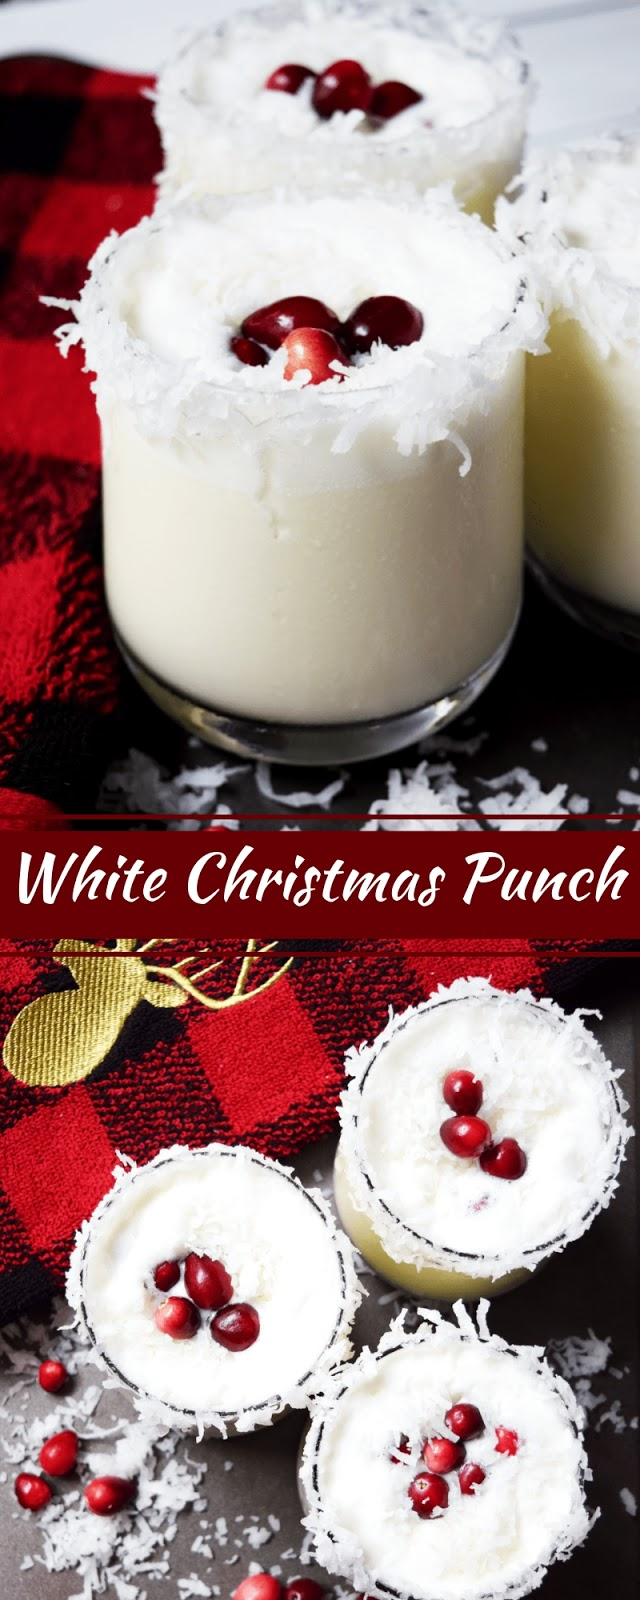 play the christmas music yet but i must have been dreaming of some recipes and cake ideas this white christmas punch is one of them - Christmas Punch Ideas